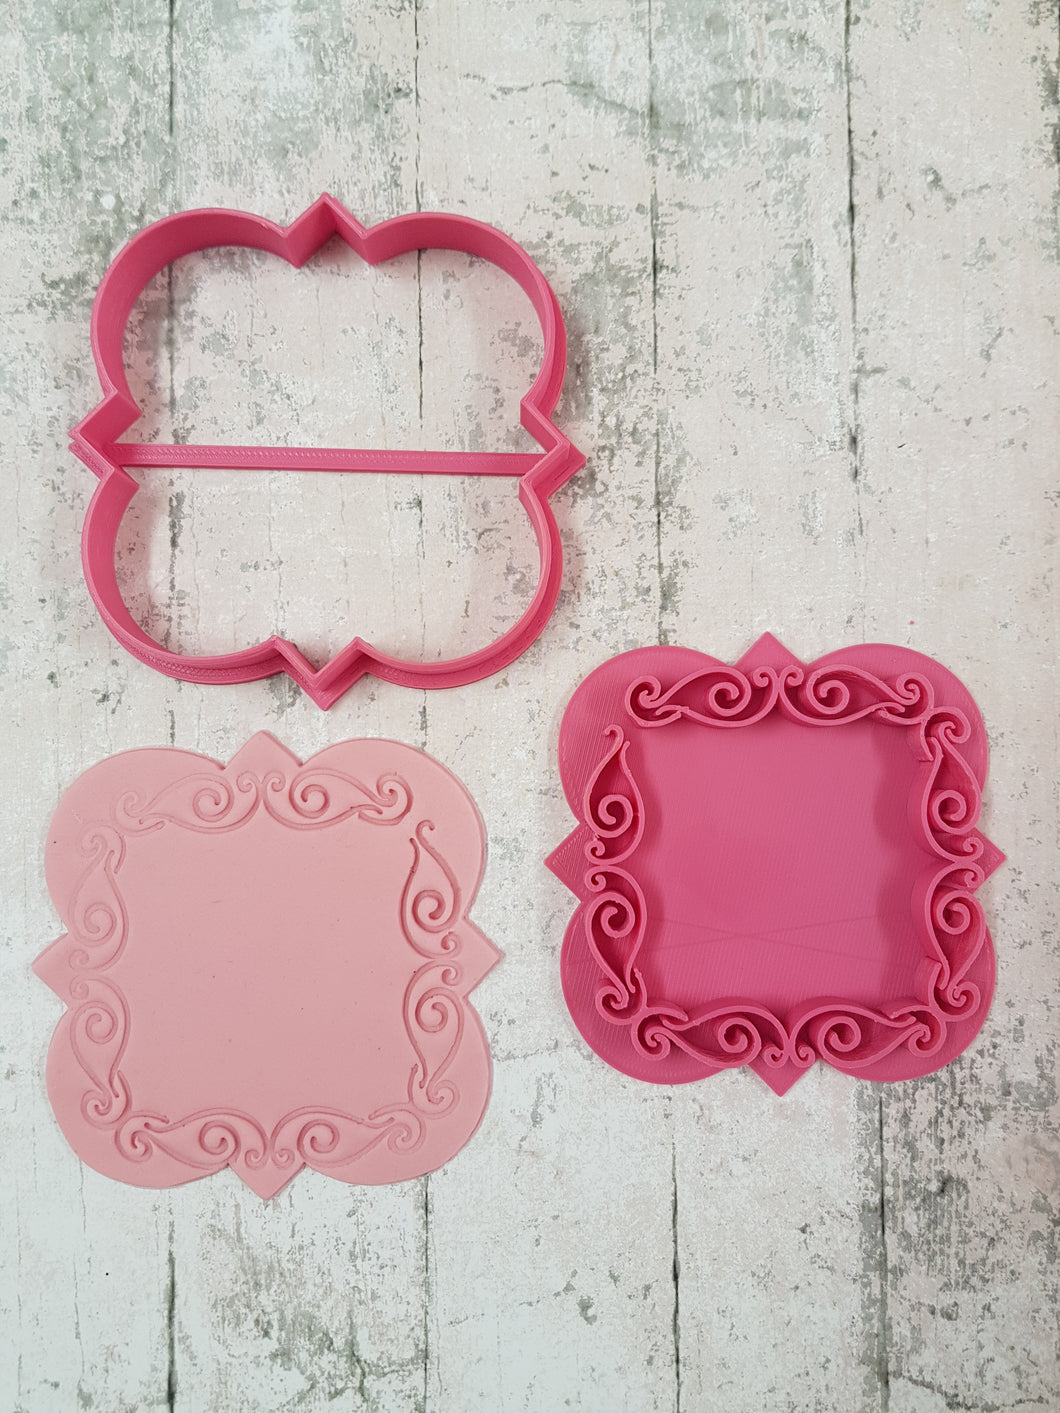 Style 1 fancy border stamp and cutter